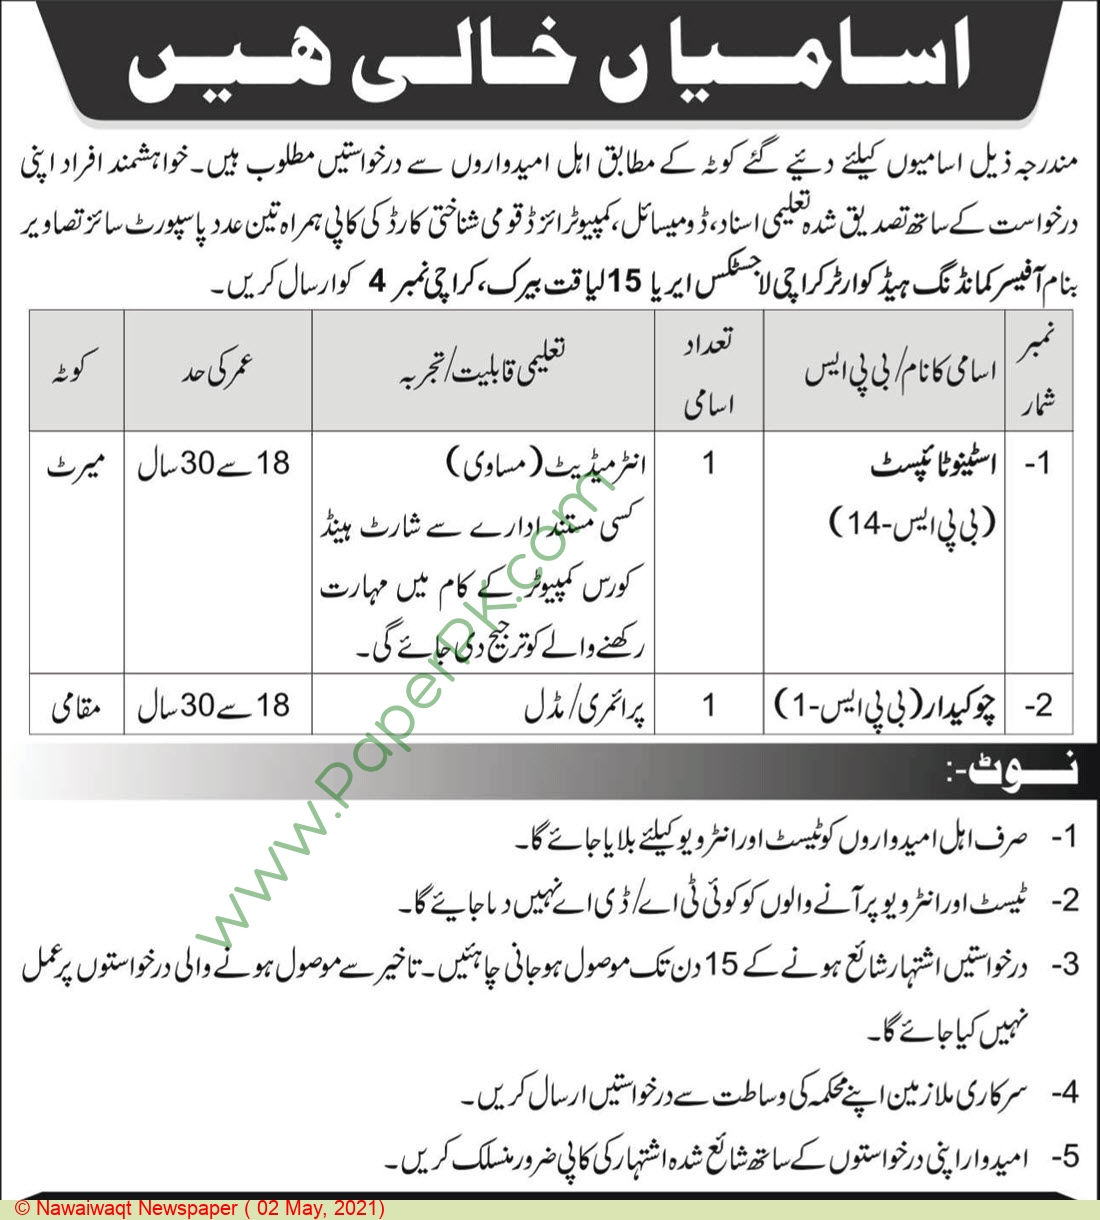 Pakistan Army jobs newspaper ad for Chowkidar in Quetta on 2021-05-02